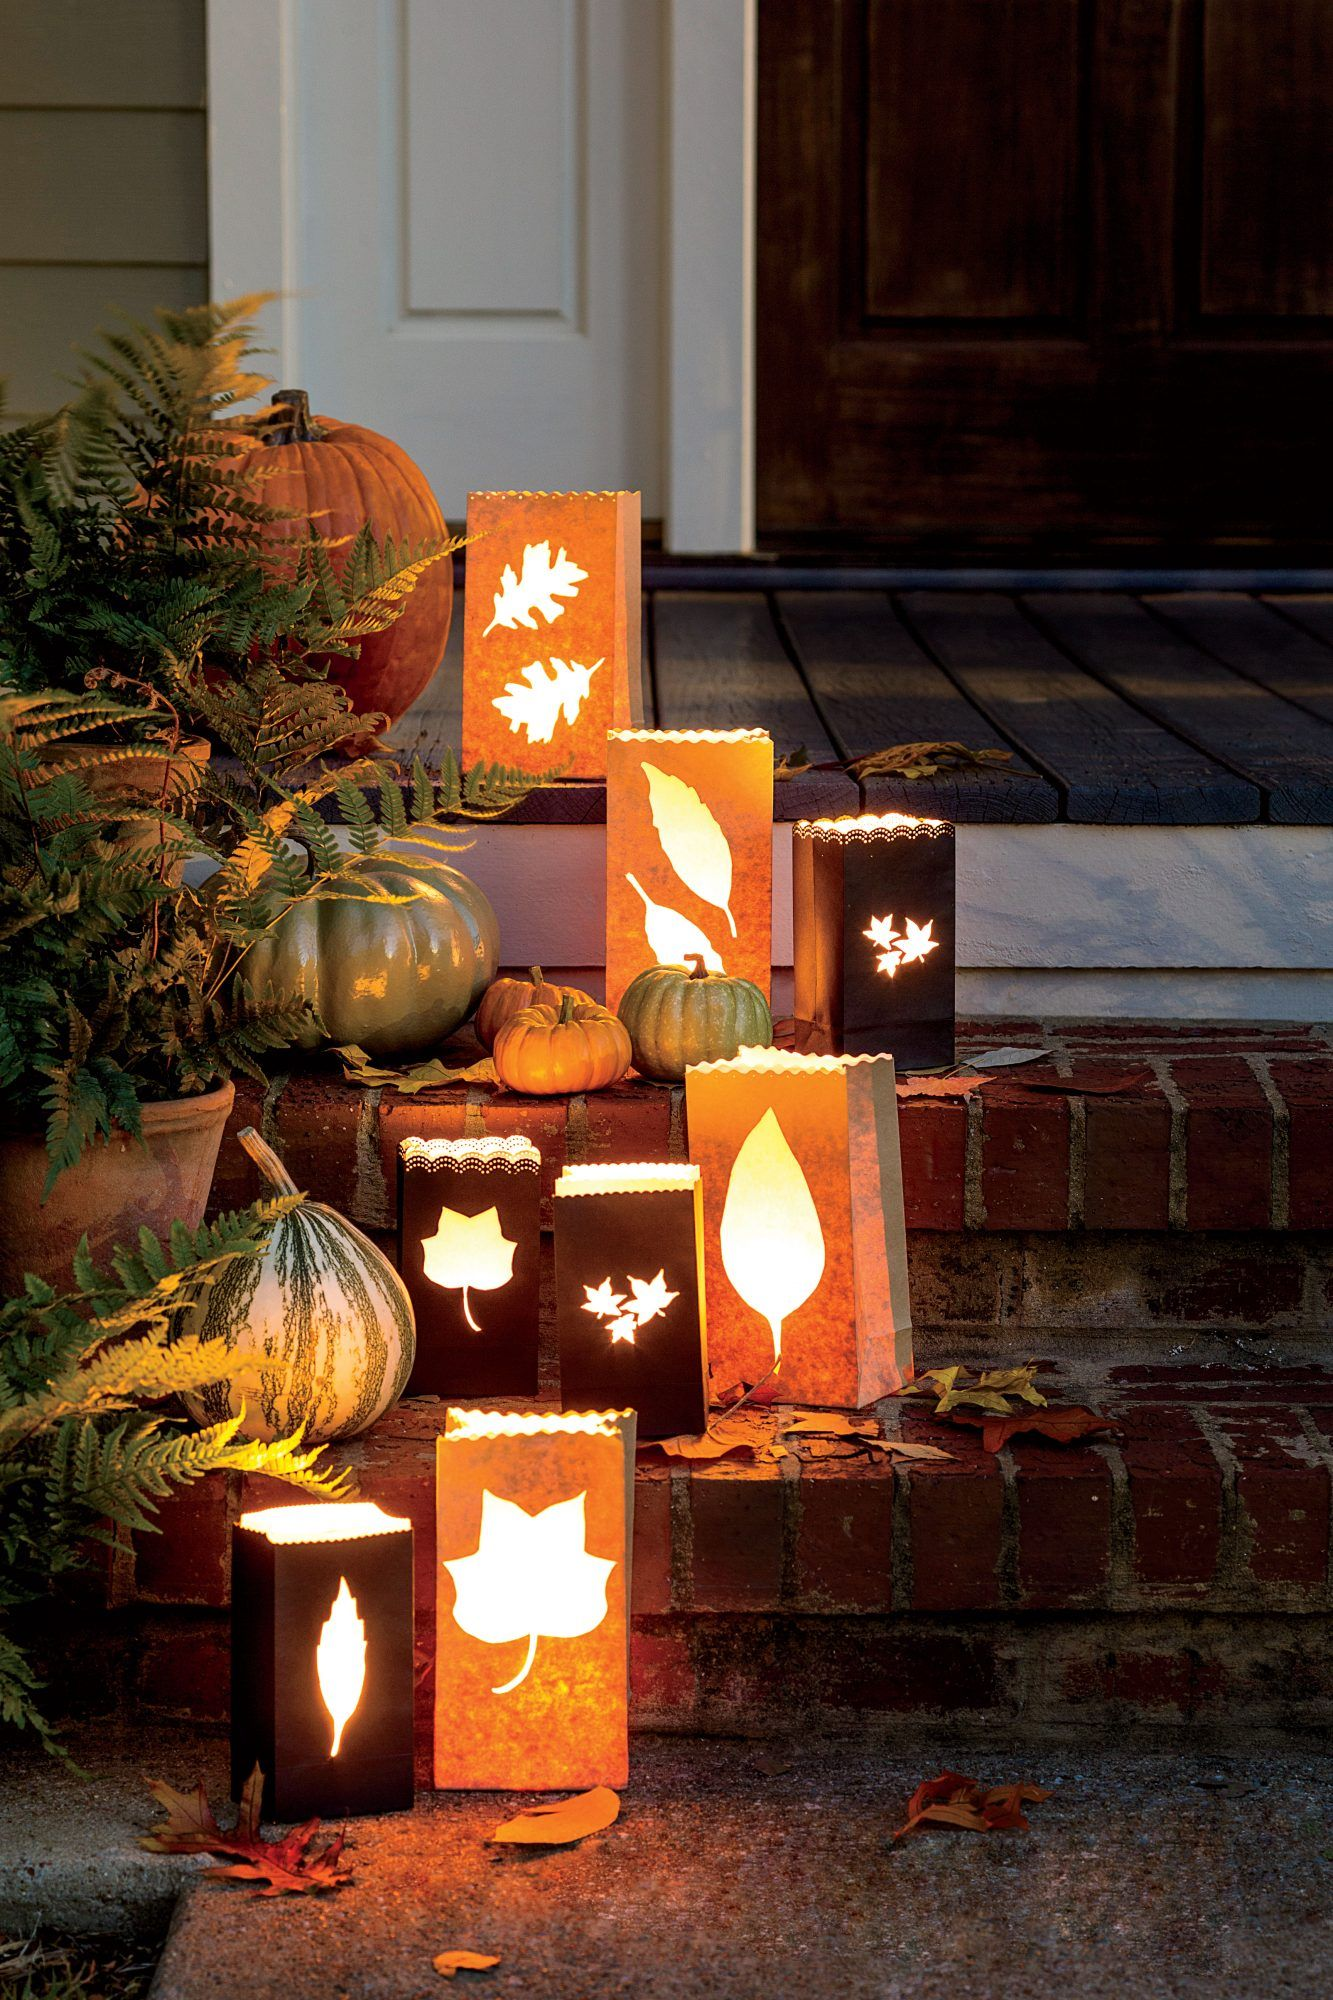 Outdoor Decorations For Fall In 2020 Fall Decorations Porch Fall Decor Diy Diy Fall